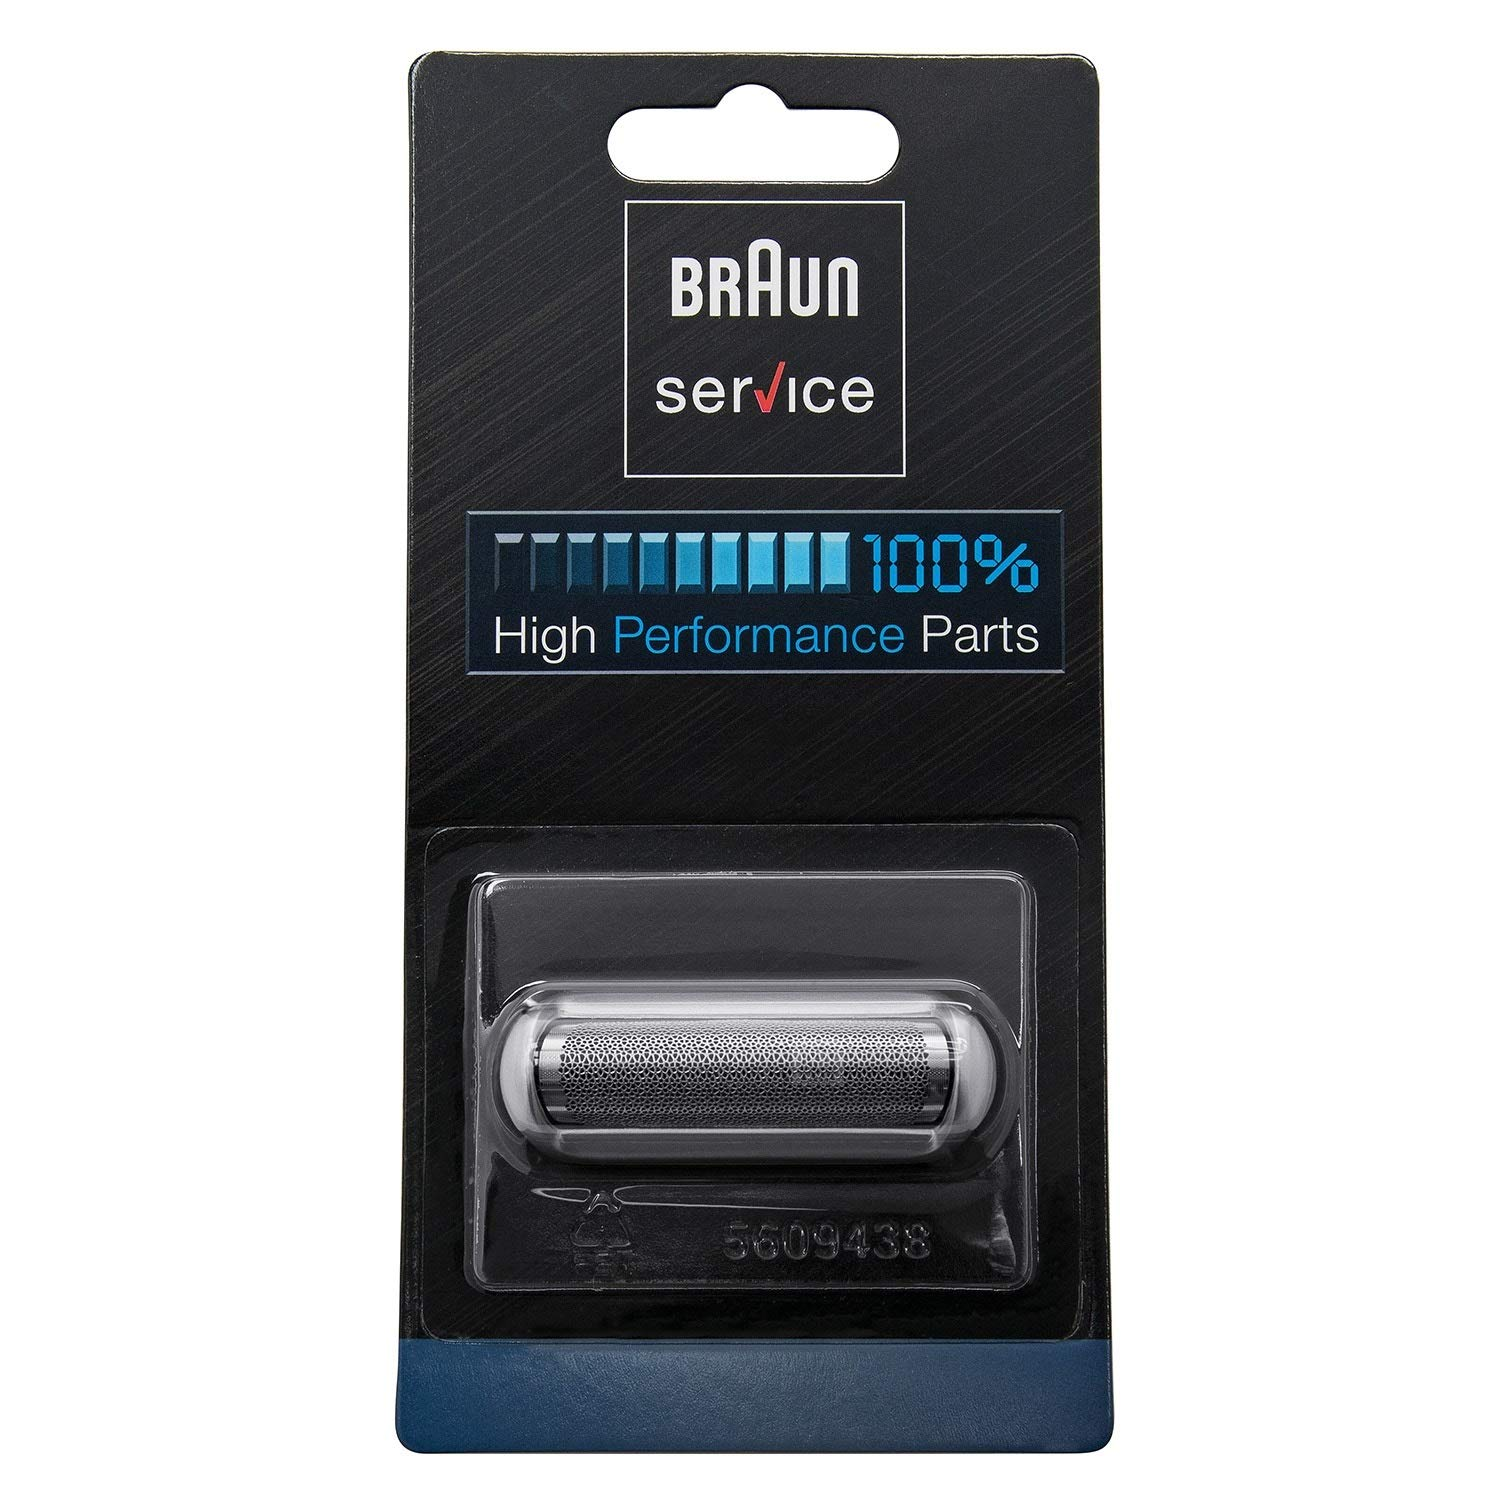 Braun Shaver Replacement Foil Pocket Shaver, CruZer Twist, PocketGo, MobileShave, silver with approx. 6cm Braun cleaning brush and Braun oil 7ml (5S): ...